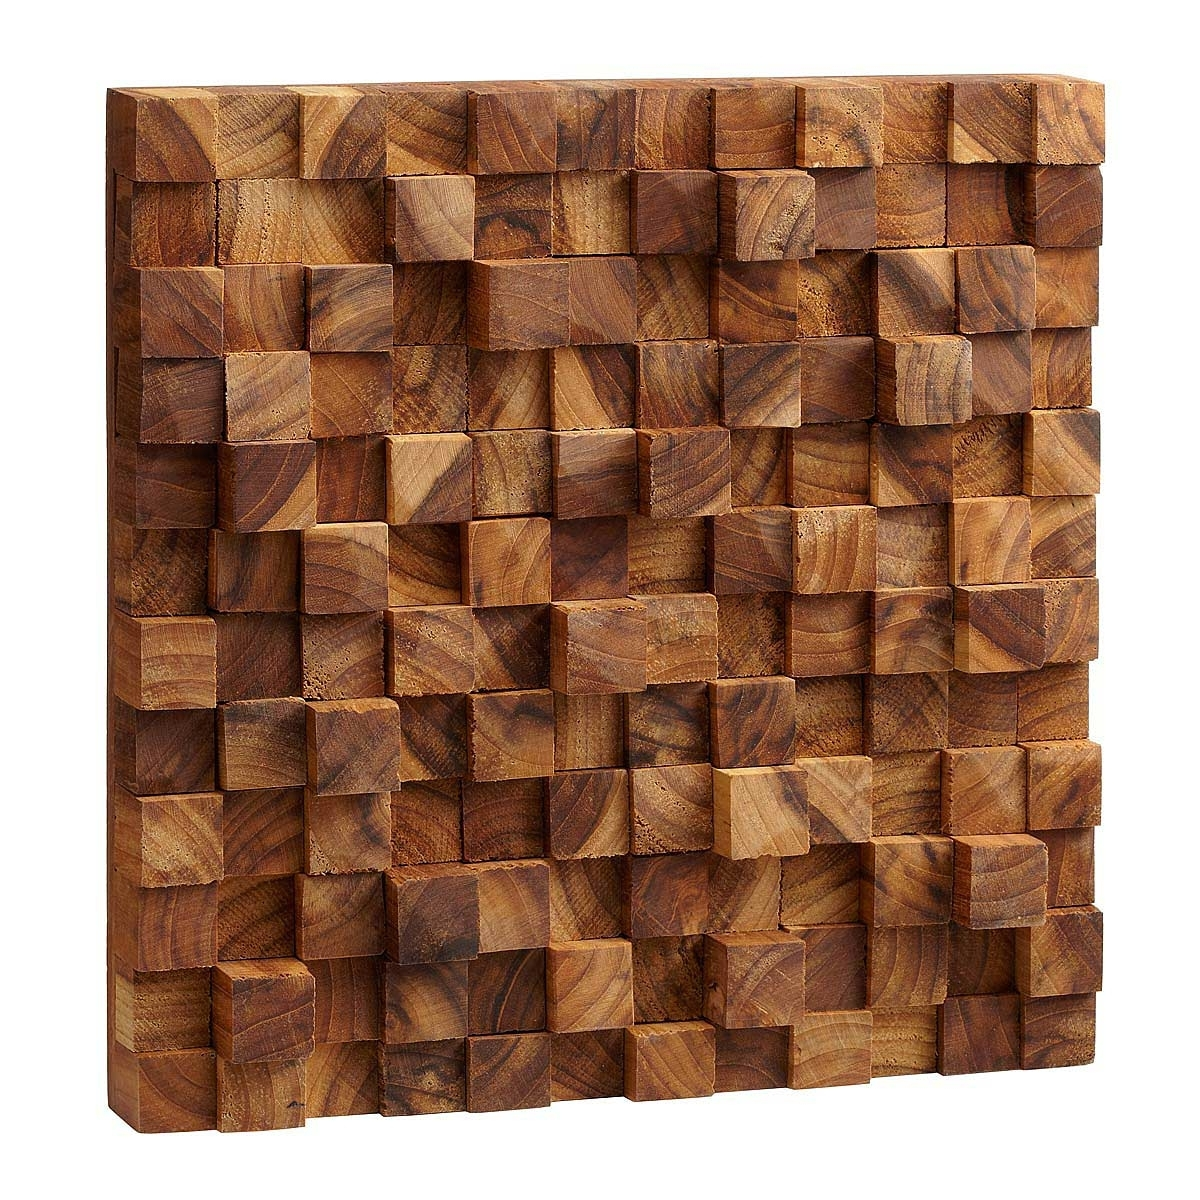 Uncommongoods In Trendy Wooden Wall Art (View 4 of 15)